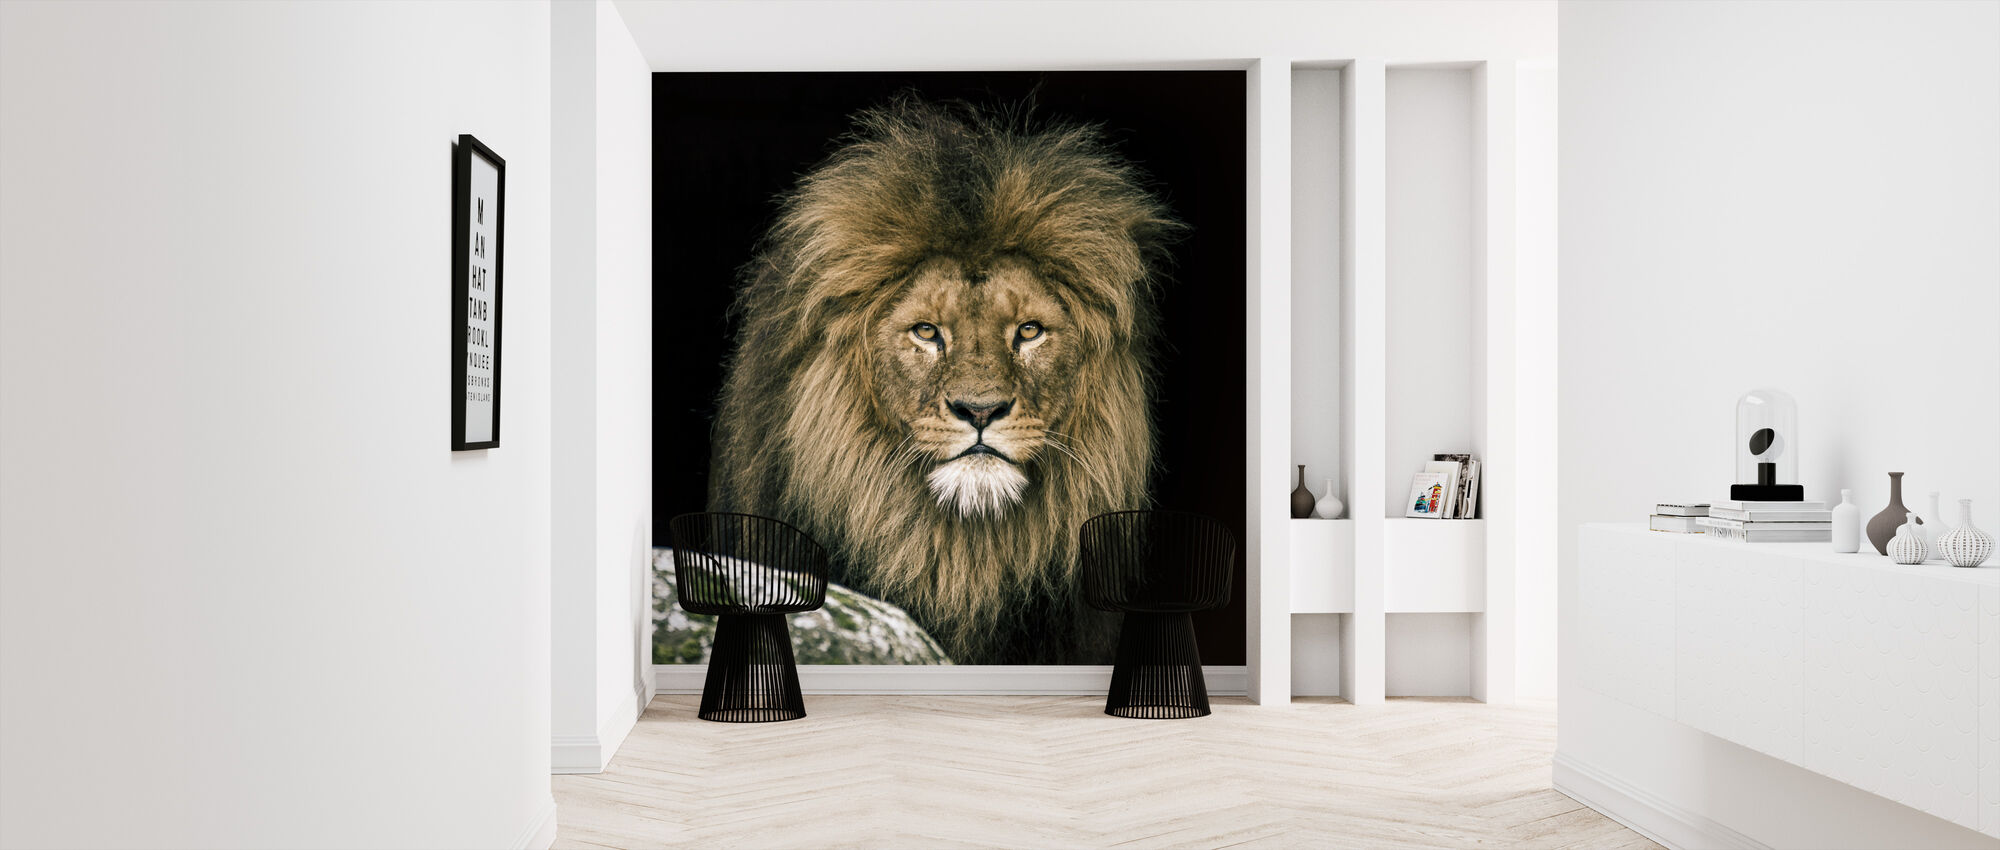 Lion - Wallpaper - Hallway